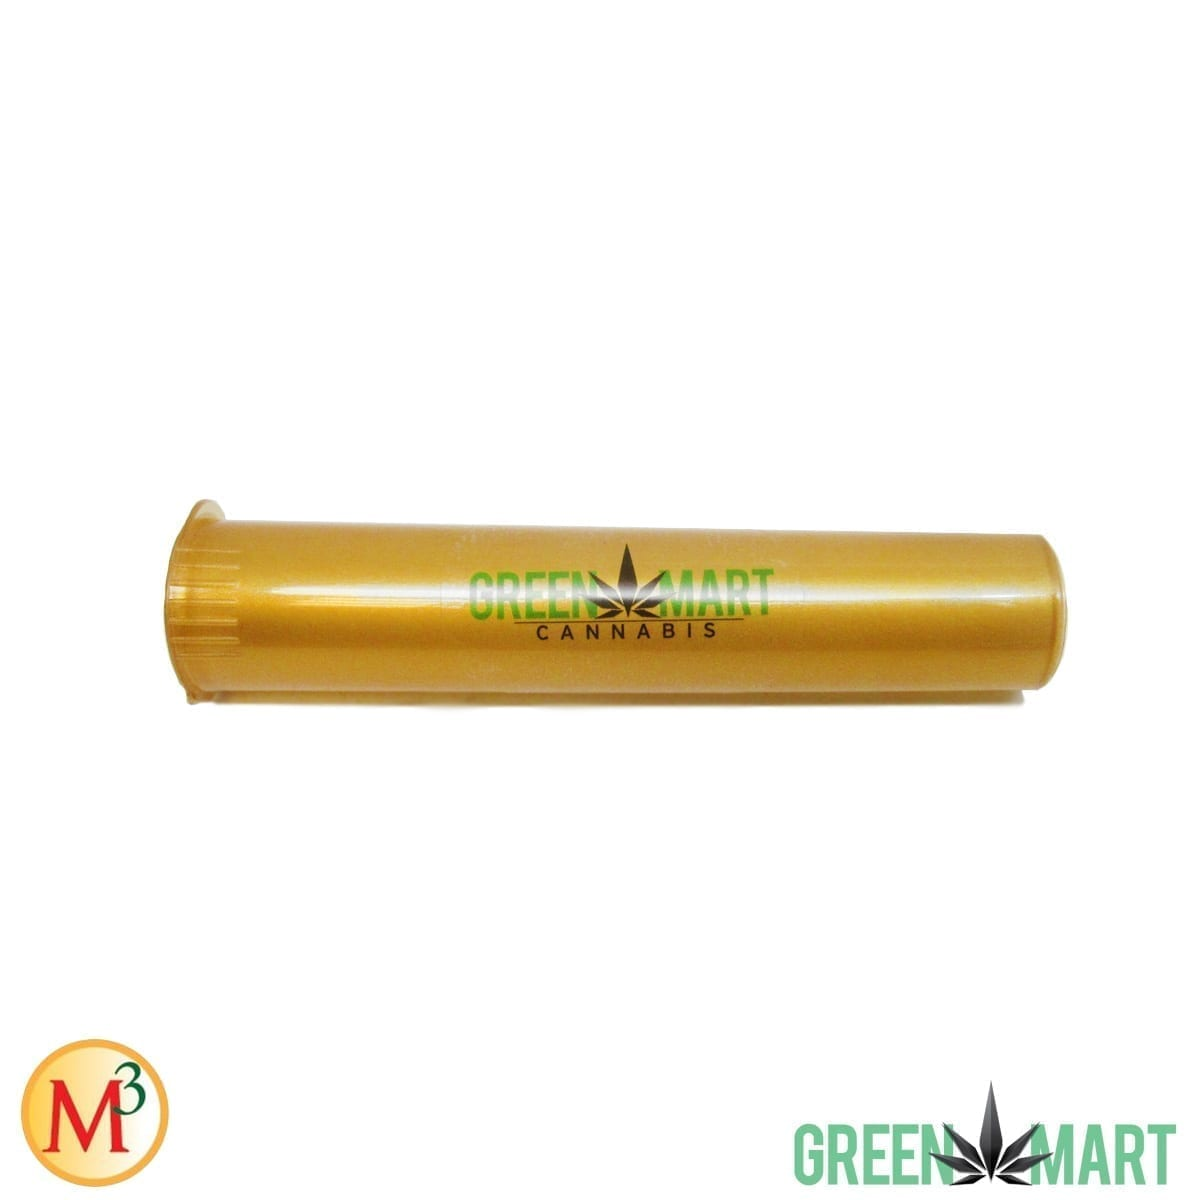 Mother Magnolia Green Mart Rolled Pre-roll